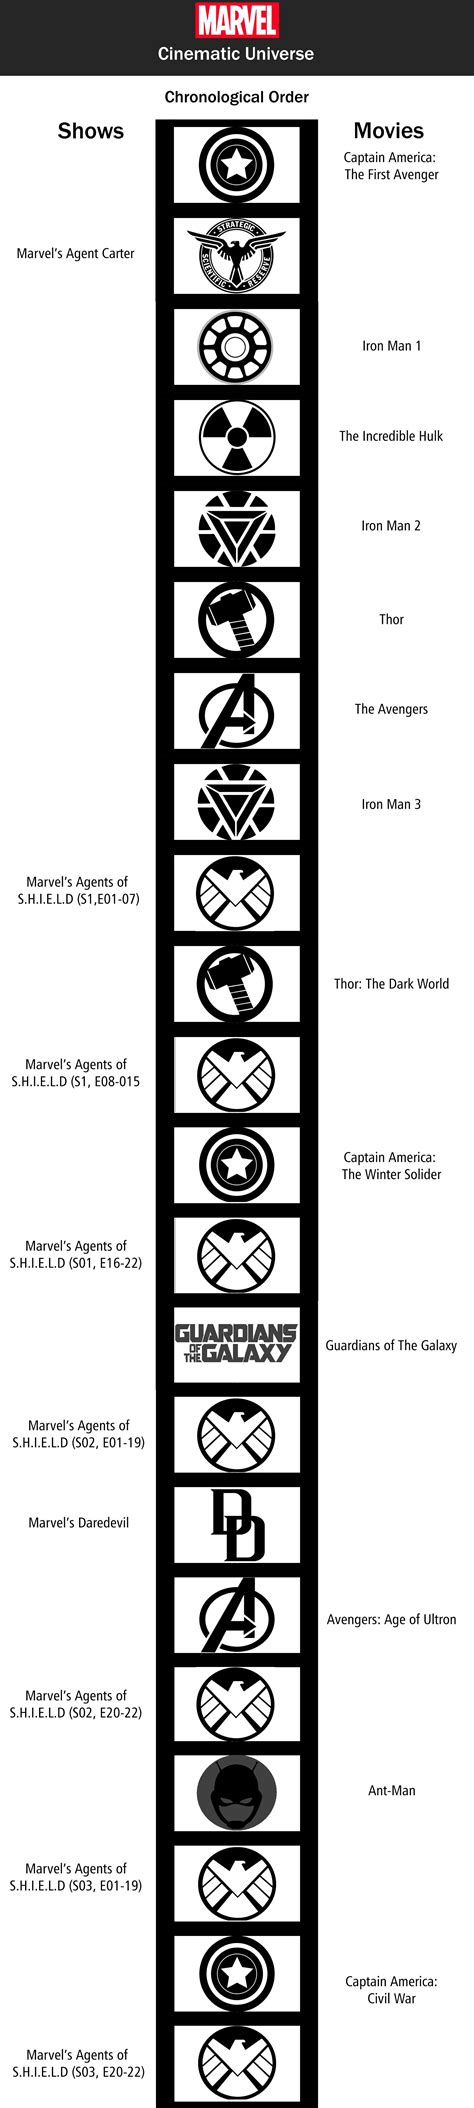 marvel film viewing order marvel movies and shows in chronological order marvel